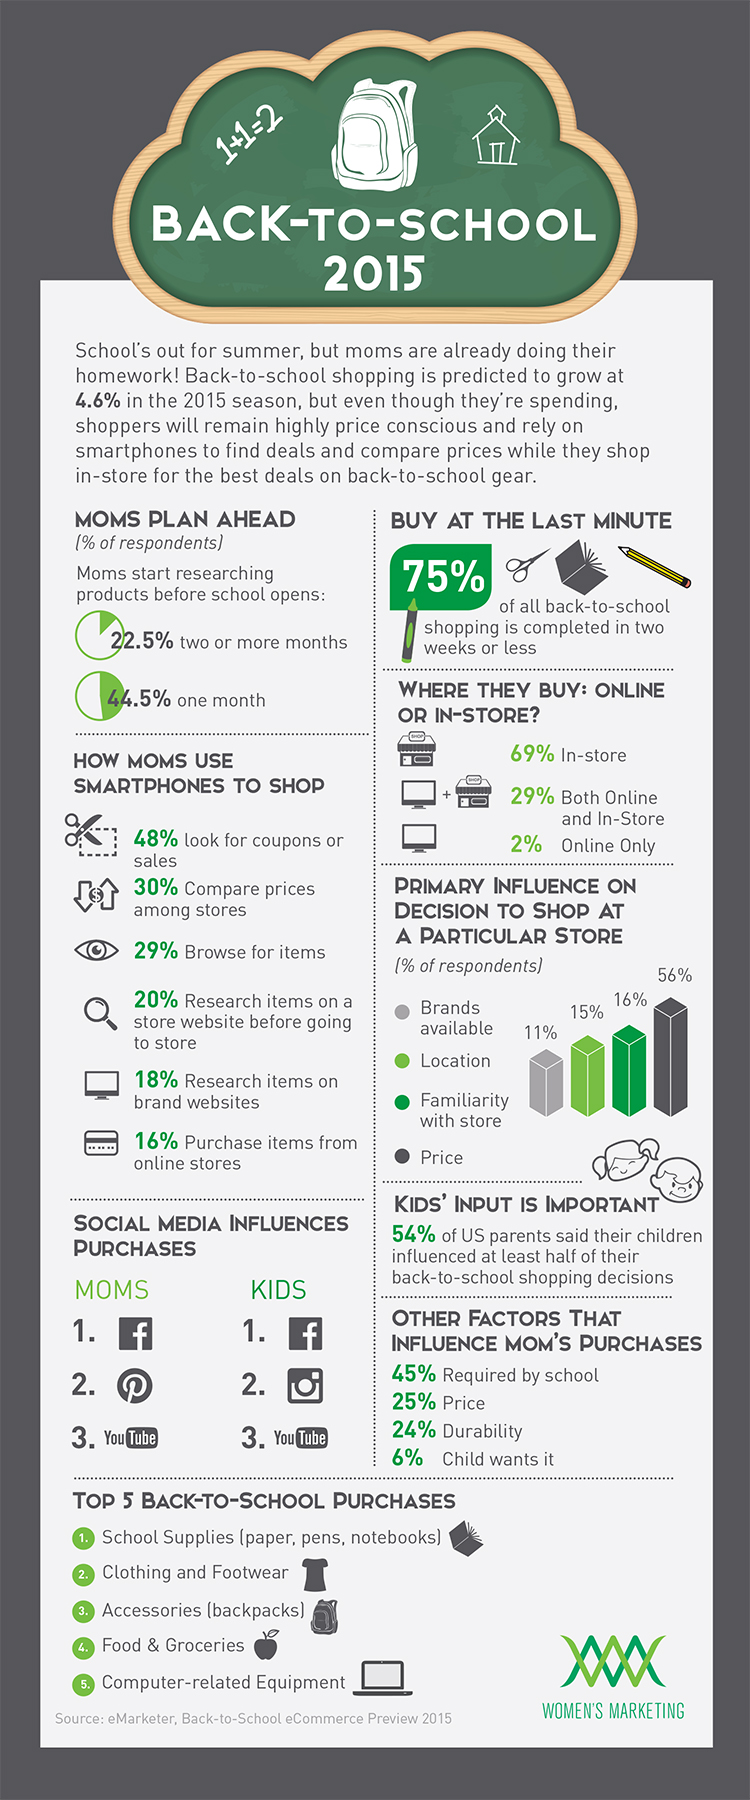 Back-to-school-items-and-shopping-trends-infographic